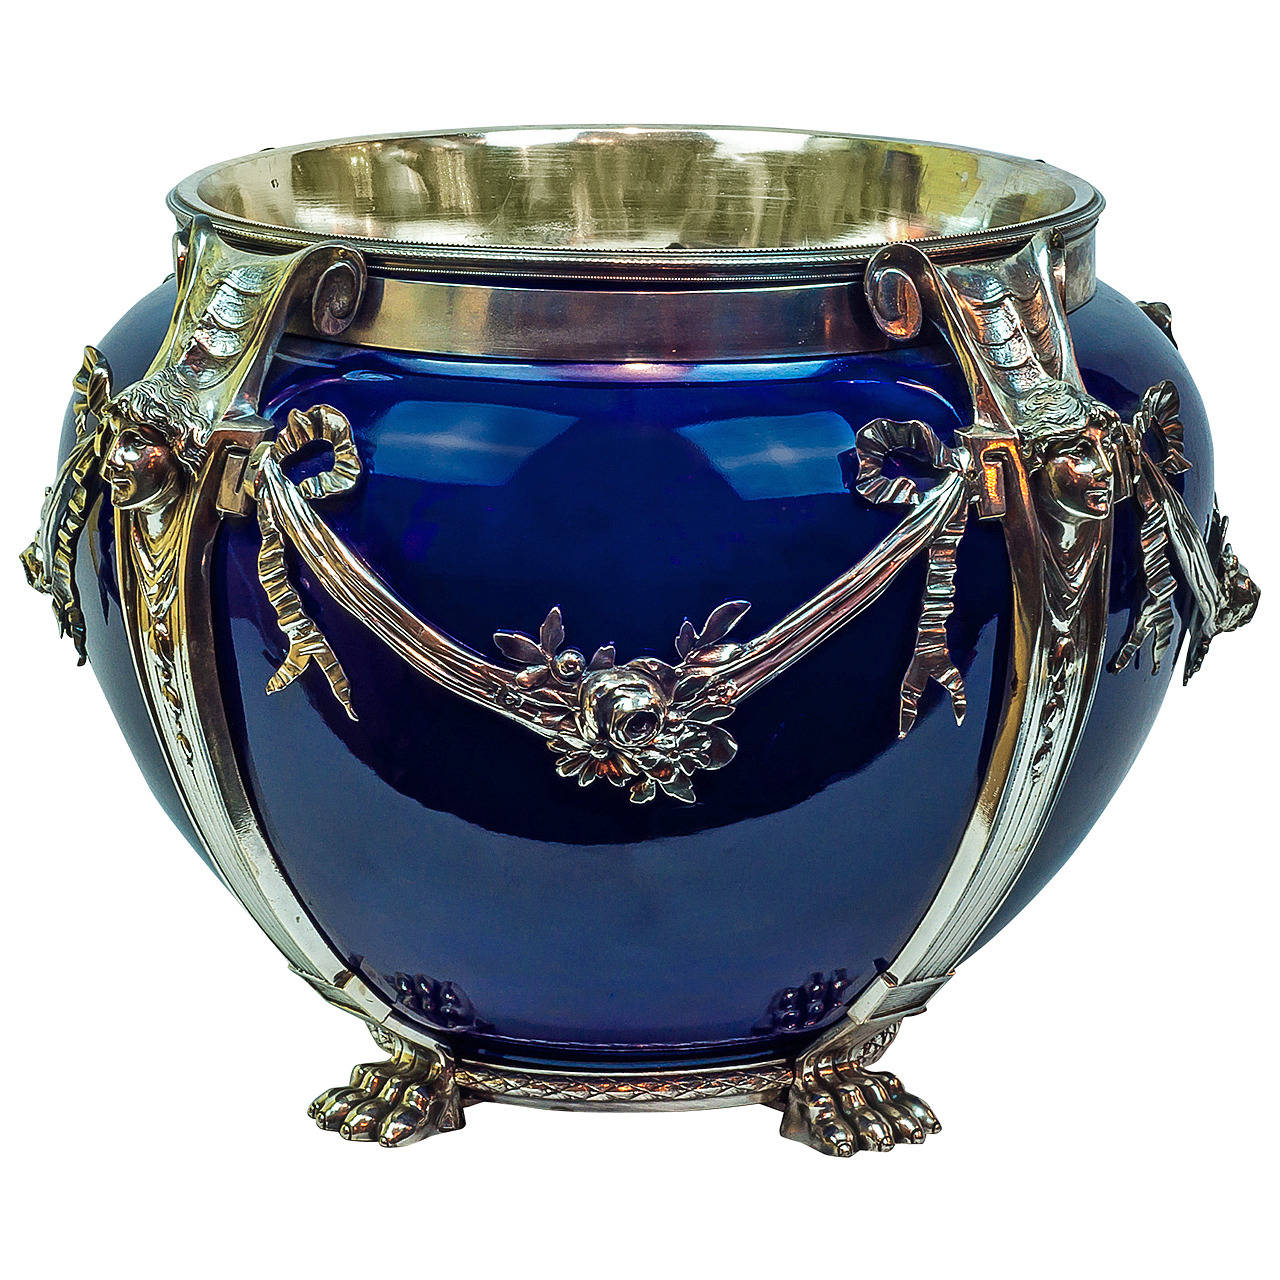 French silvered bronze and porcelain cobalt blue